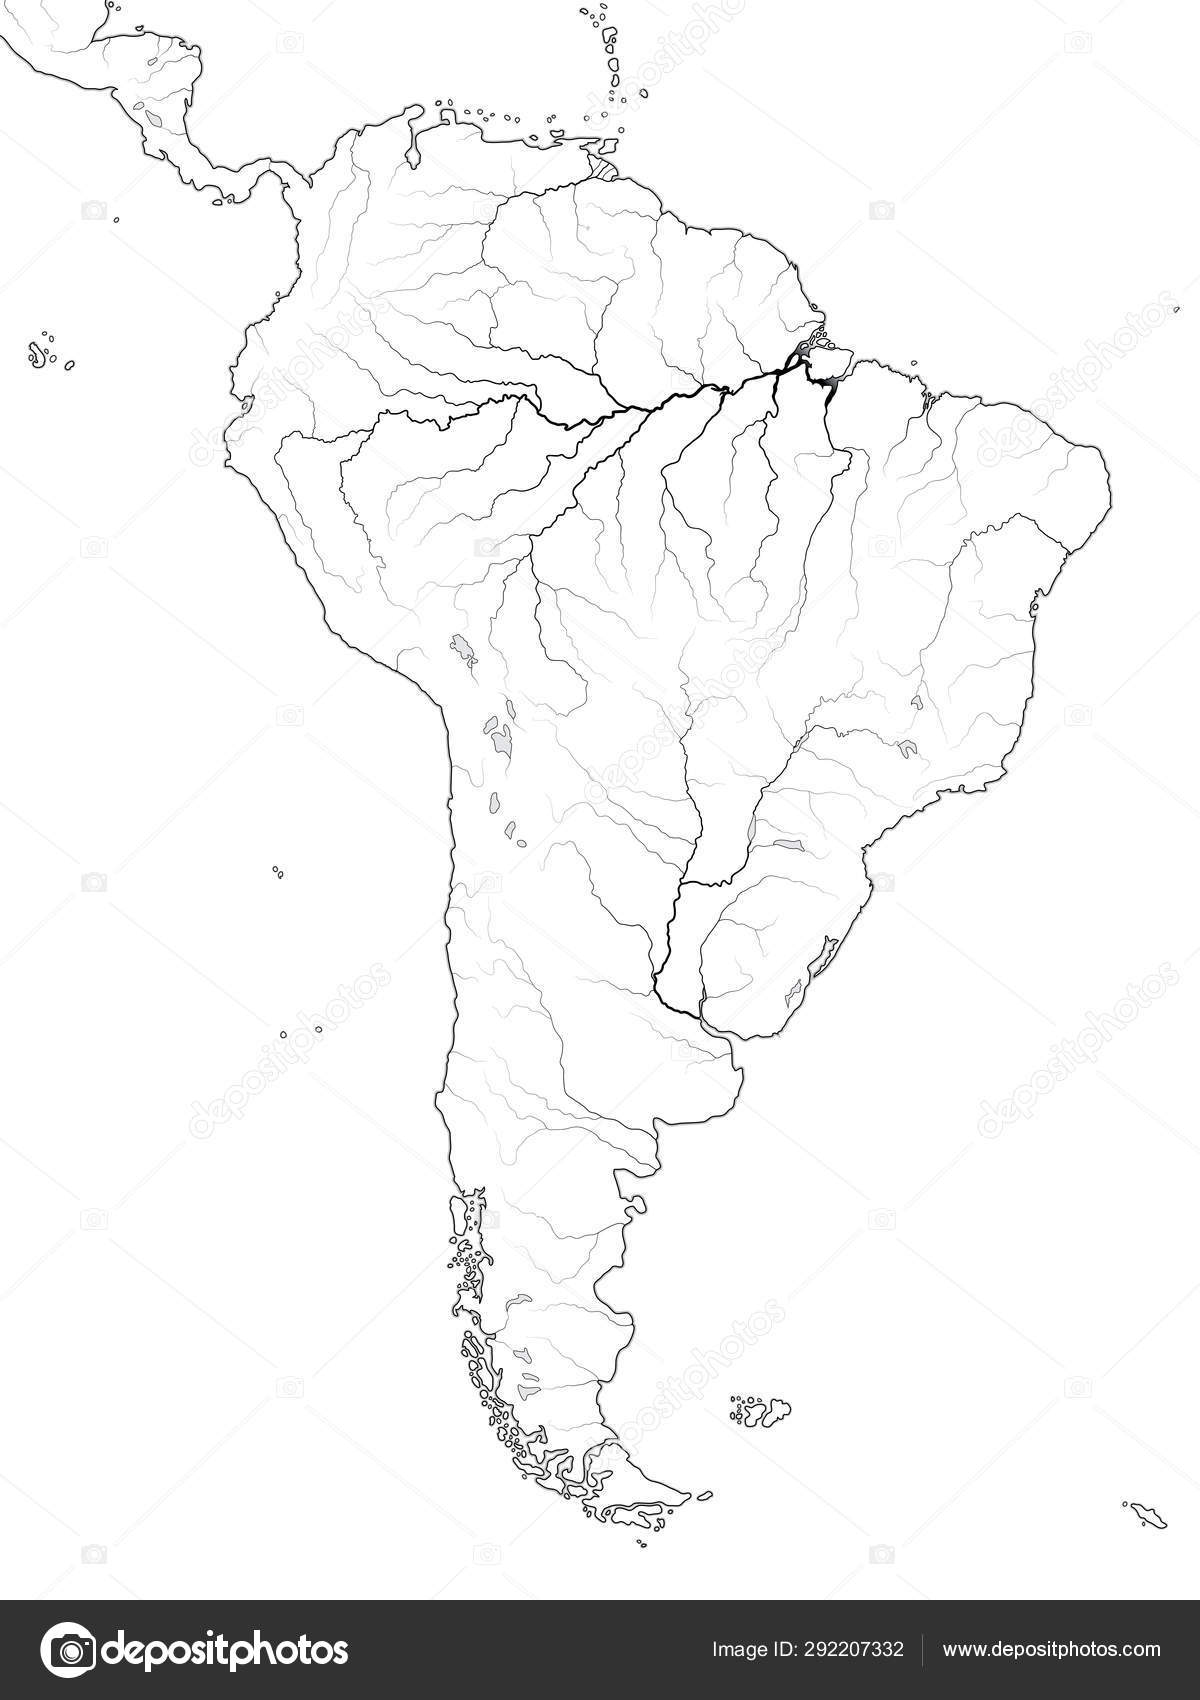 World Map of SOUTH AMERICA: Latin America, Argentina, zil ... on ecuador map in south america, people in south america, places in south america, home in south america, art in south america, colombia map in south america, world map west africa, travel in south america, france in south america, games in south america, blue in south america, japan in south america, germany in south america, world map cambodia and vietnam, world map central america, world map north america, egypt in south america, water in south america, turkey in south america, weather in south america,